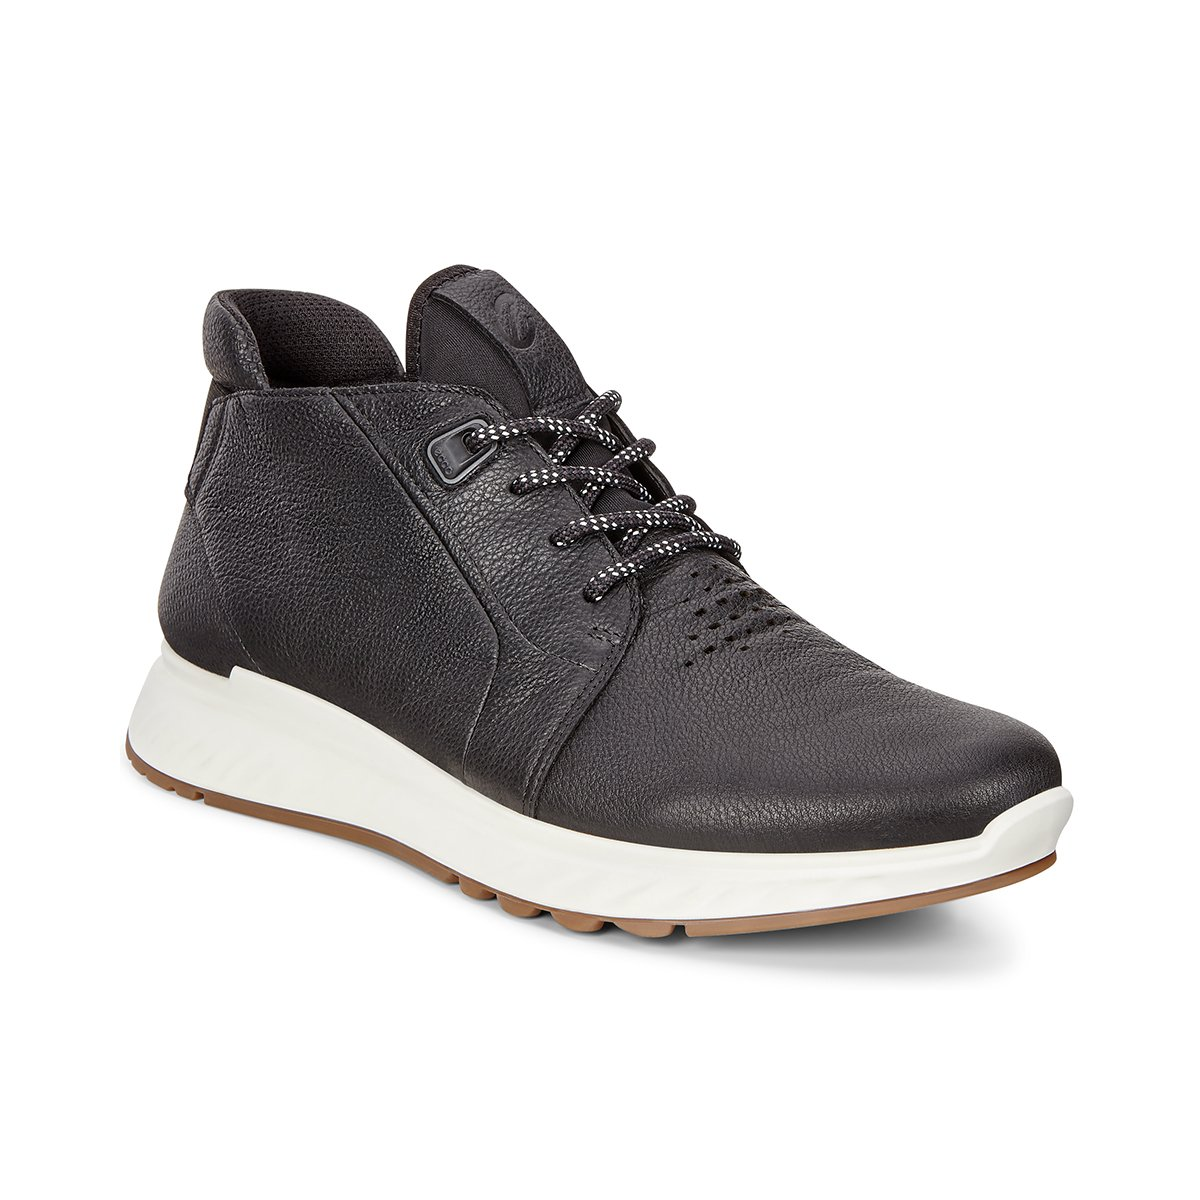 ST1 High Black - Men's by Ecco is at